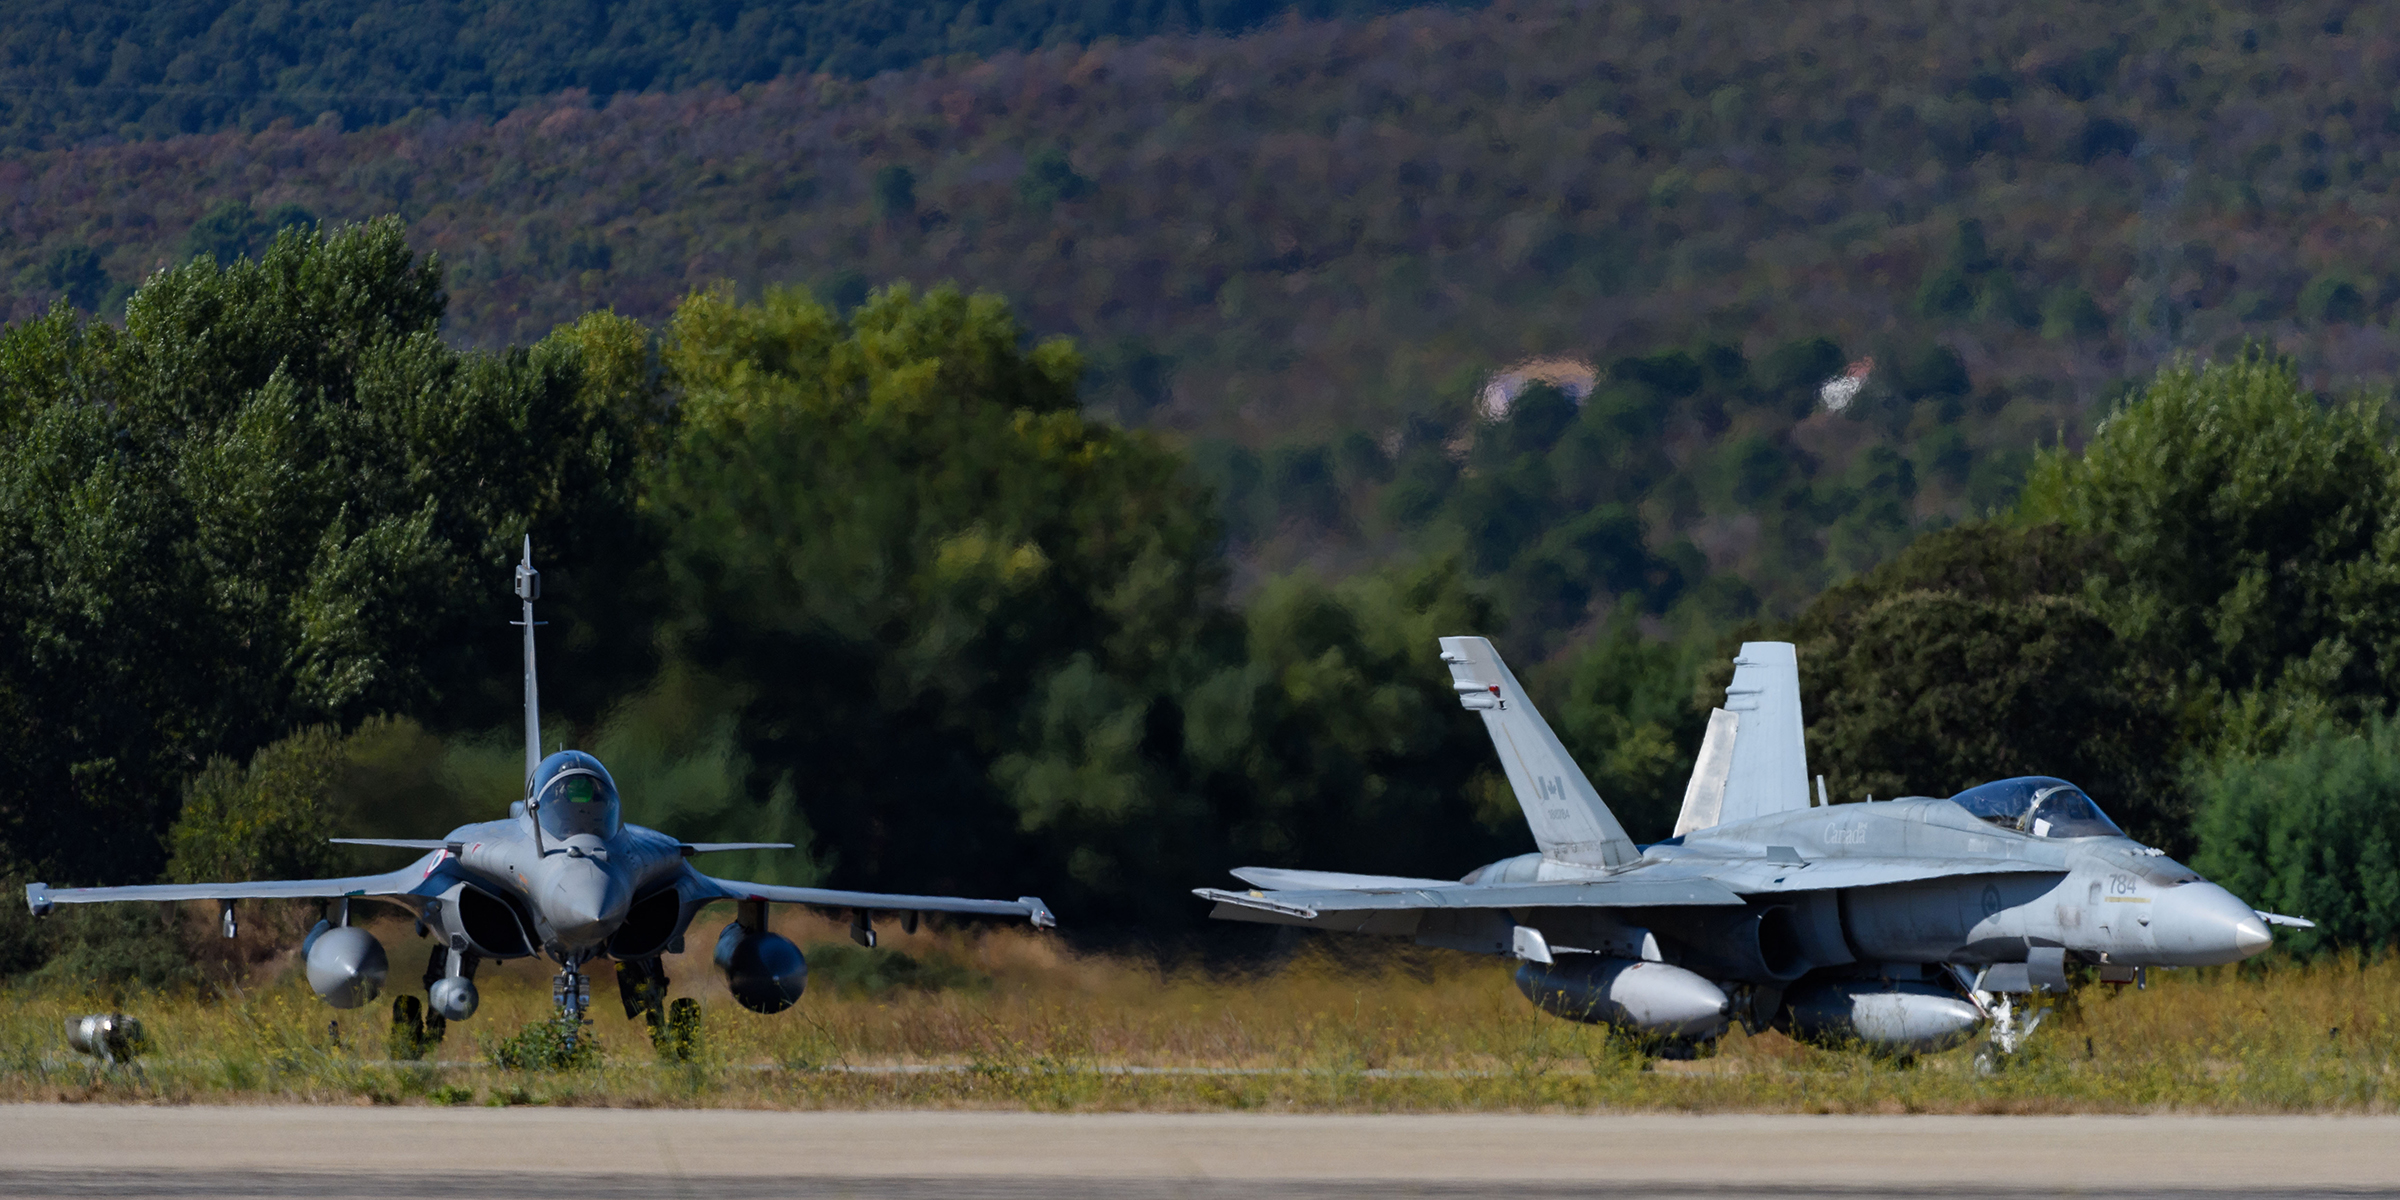 A CF-188 Hornet (right) and a Rafale fighter aircraft prepare to take off during SERPENTEX 2017 in Corsica. PHOTO: Master Corporal Louis Brunet, BN53-2017-0005-010